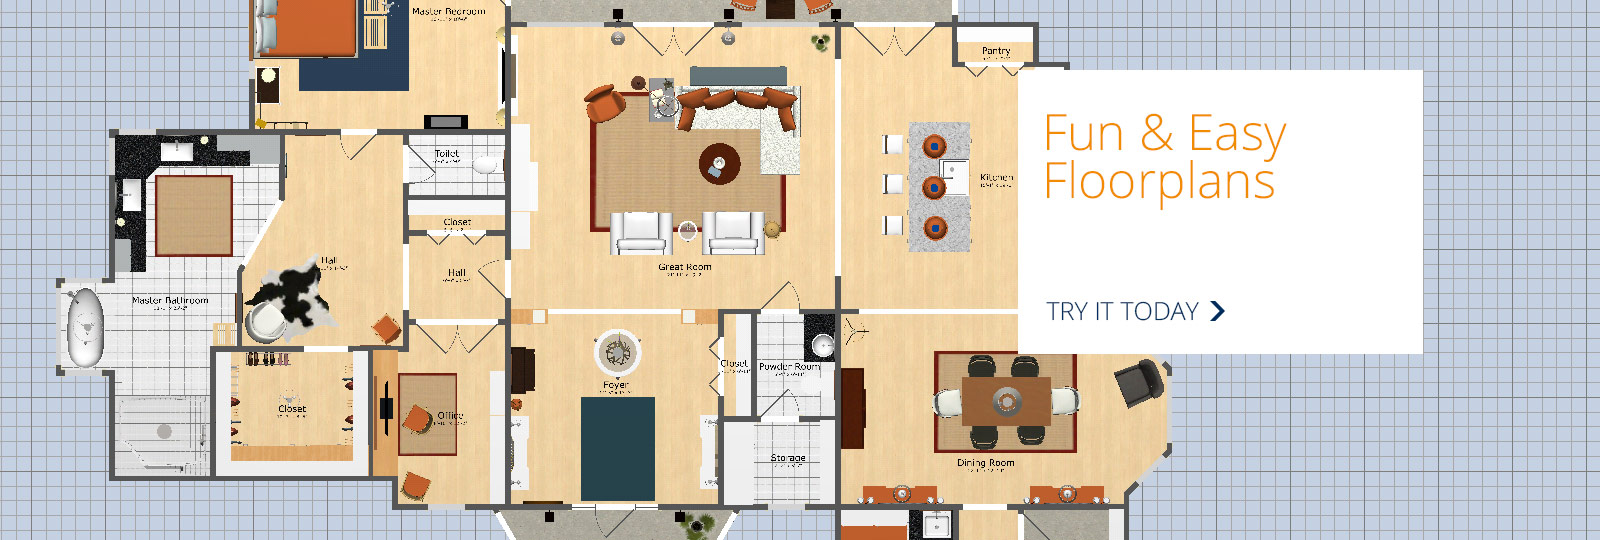 STANLEY Floor Plan On The App Store Kitchen Design App Ipad Free - Room design app